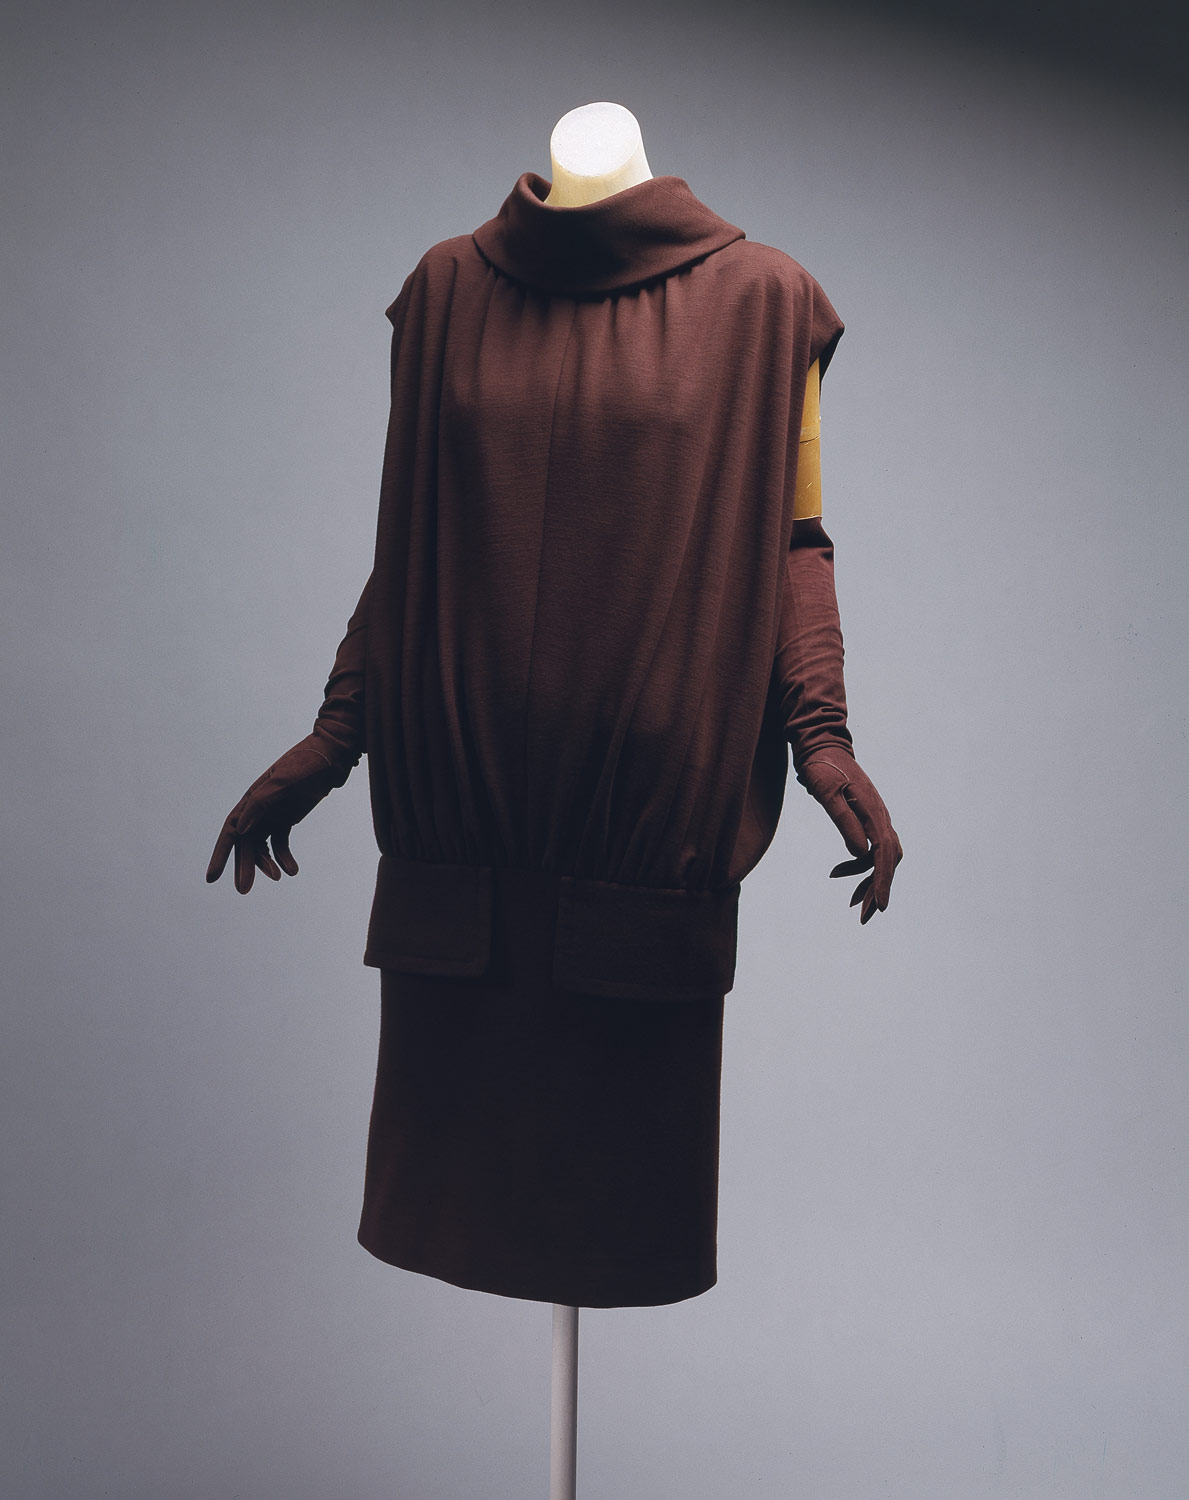 Dress House Of Balenciaga Cristobal Balenciaga C I 64